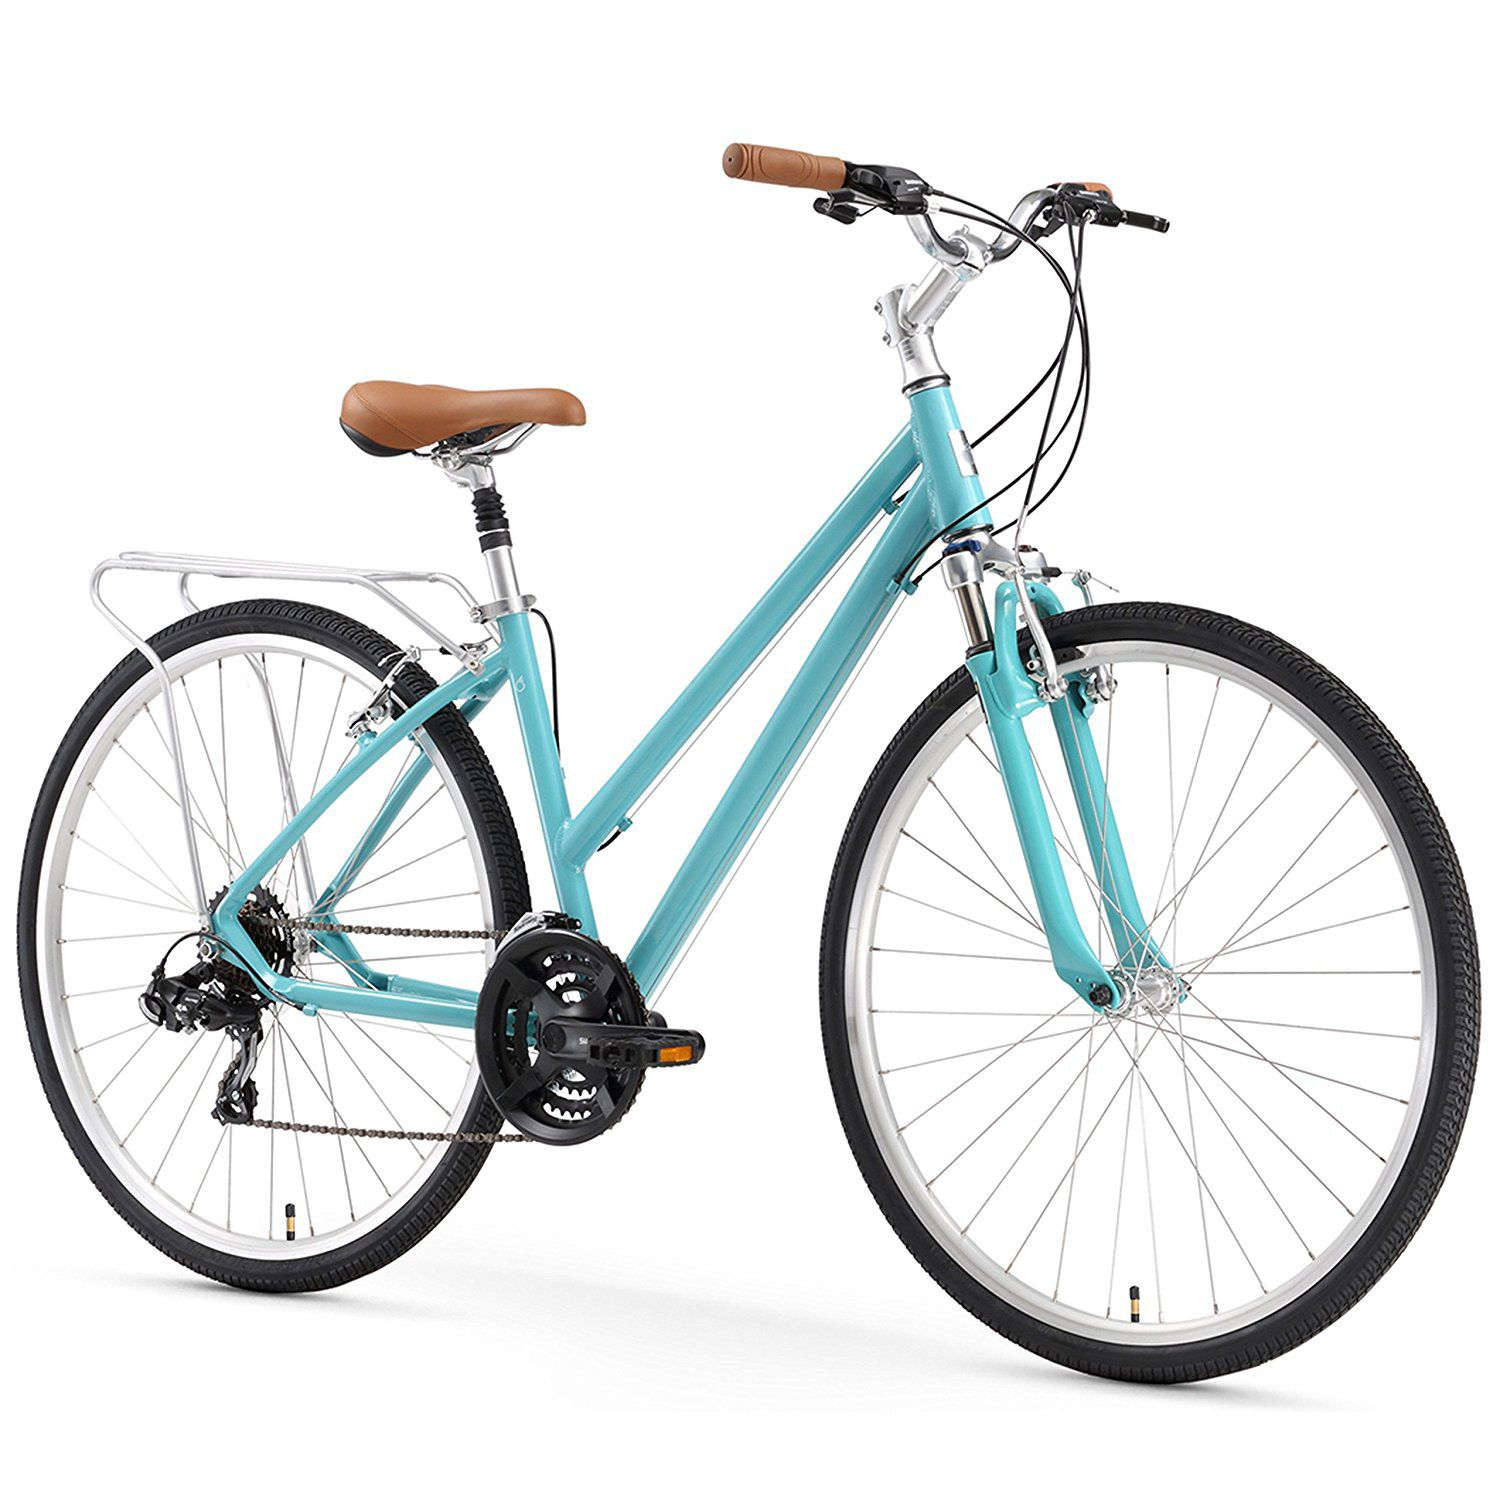 The 7 Best Bikes for Women of 2020